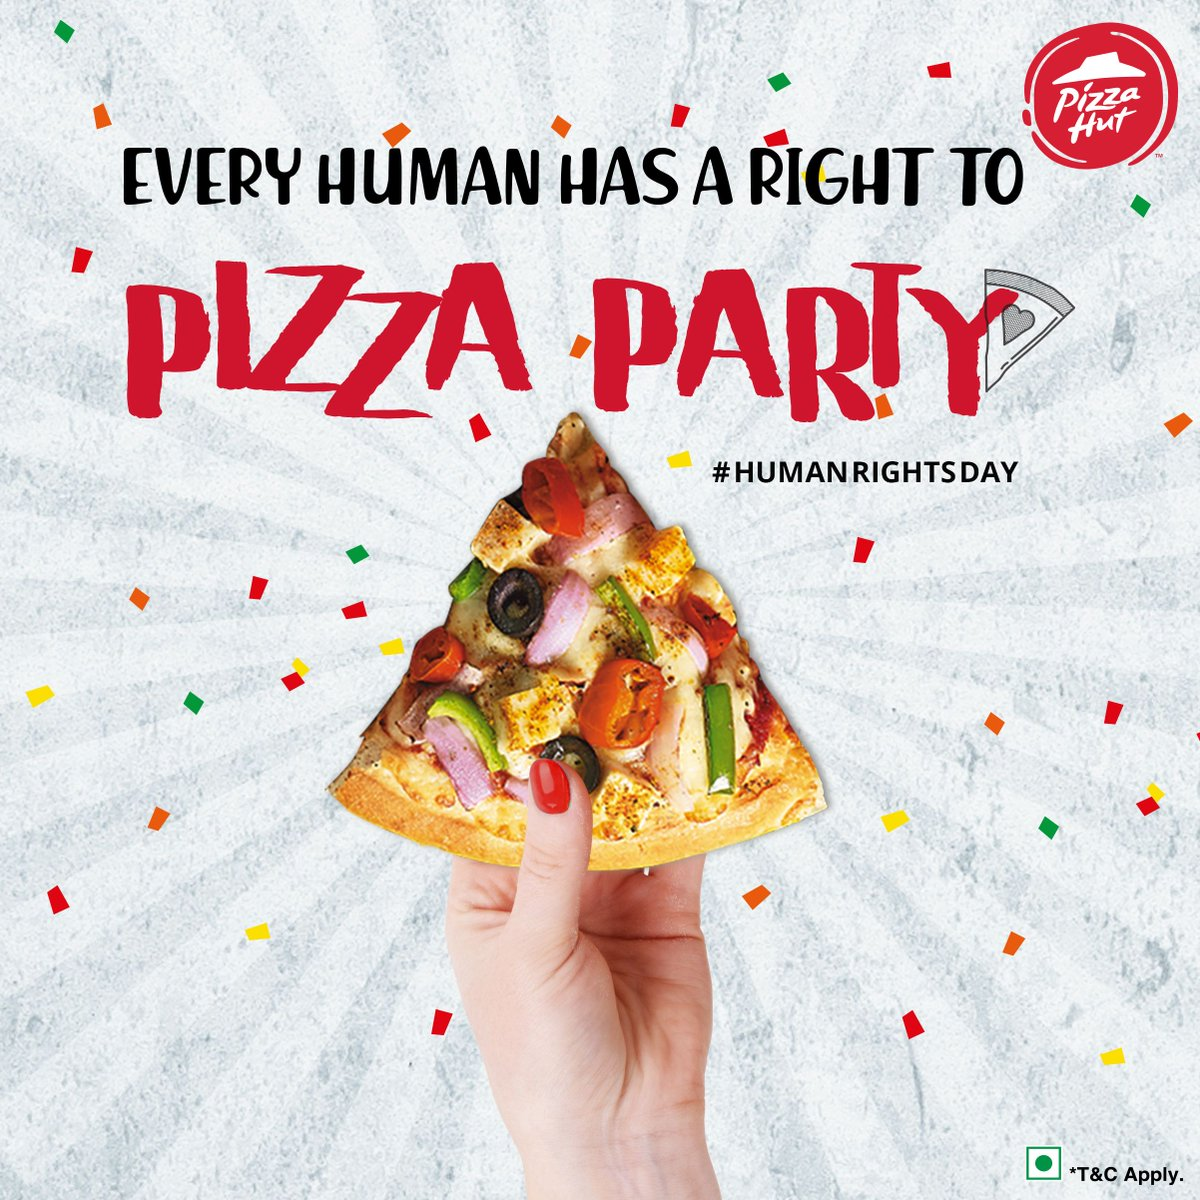 Today, we celebrate our right to enjoy pizza, whenever, wherever HumanRightsDay https t.co Cj6OTNlr73